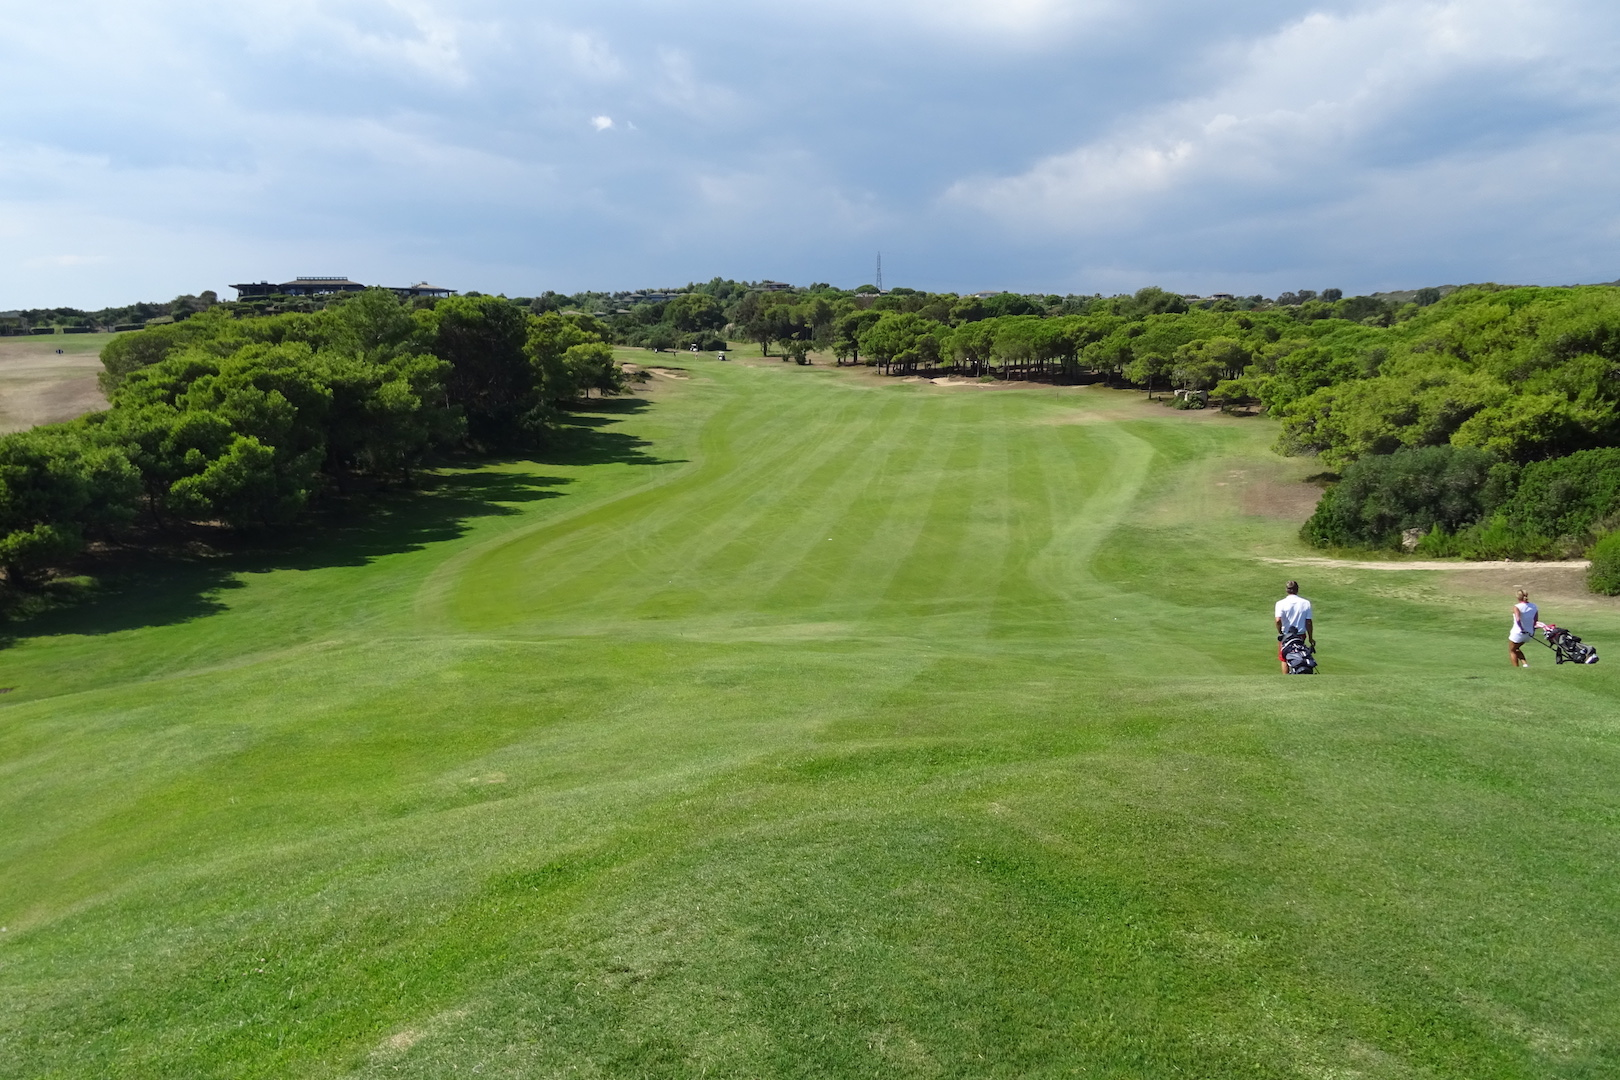 Le fairway du par 5 n°18 remonte vers le club-house